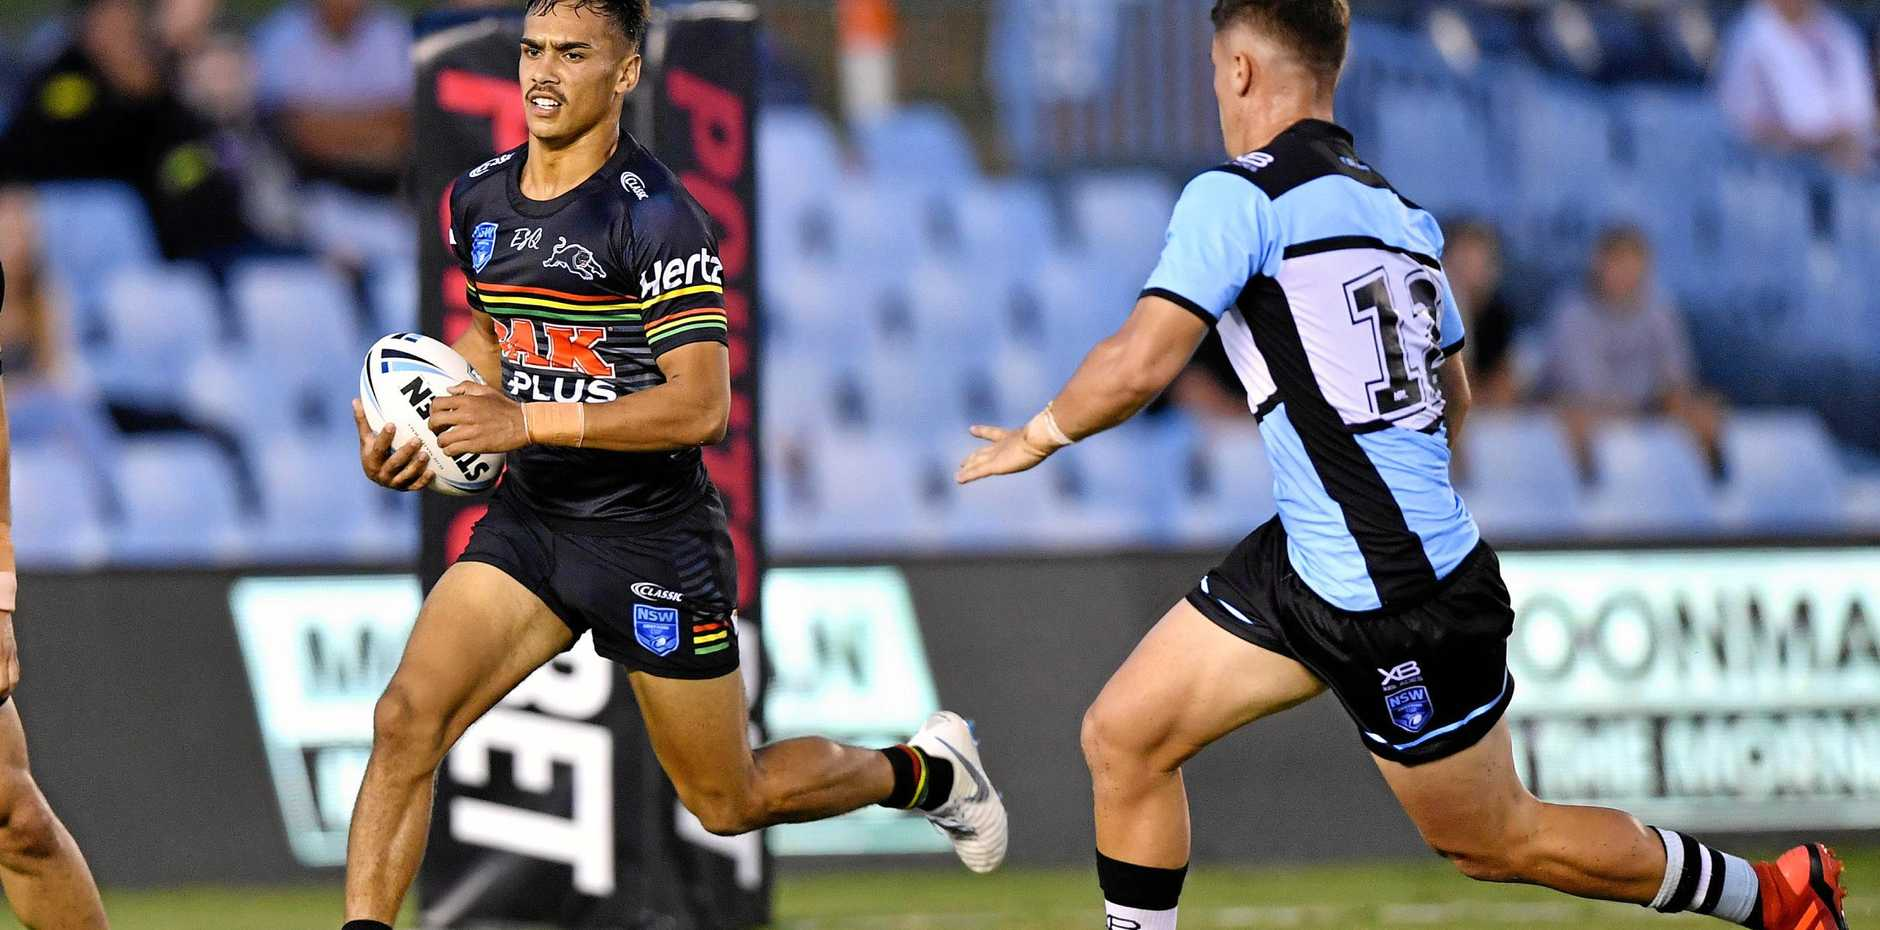 FLYING HIGH: Daine Laurie in action for the Penrith Panthers Jersey Flegg side against the Cronulla-Sutherland Sharks U20 at PointsBet Stadium last year.